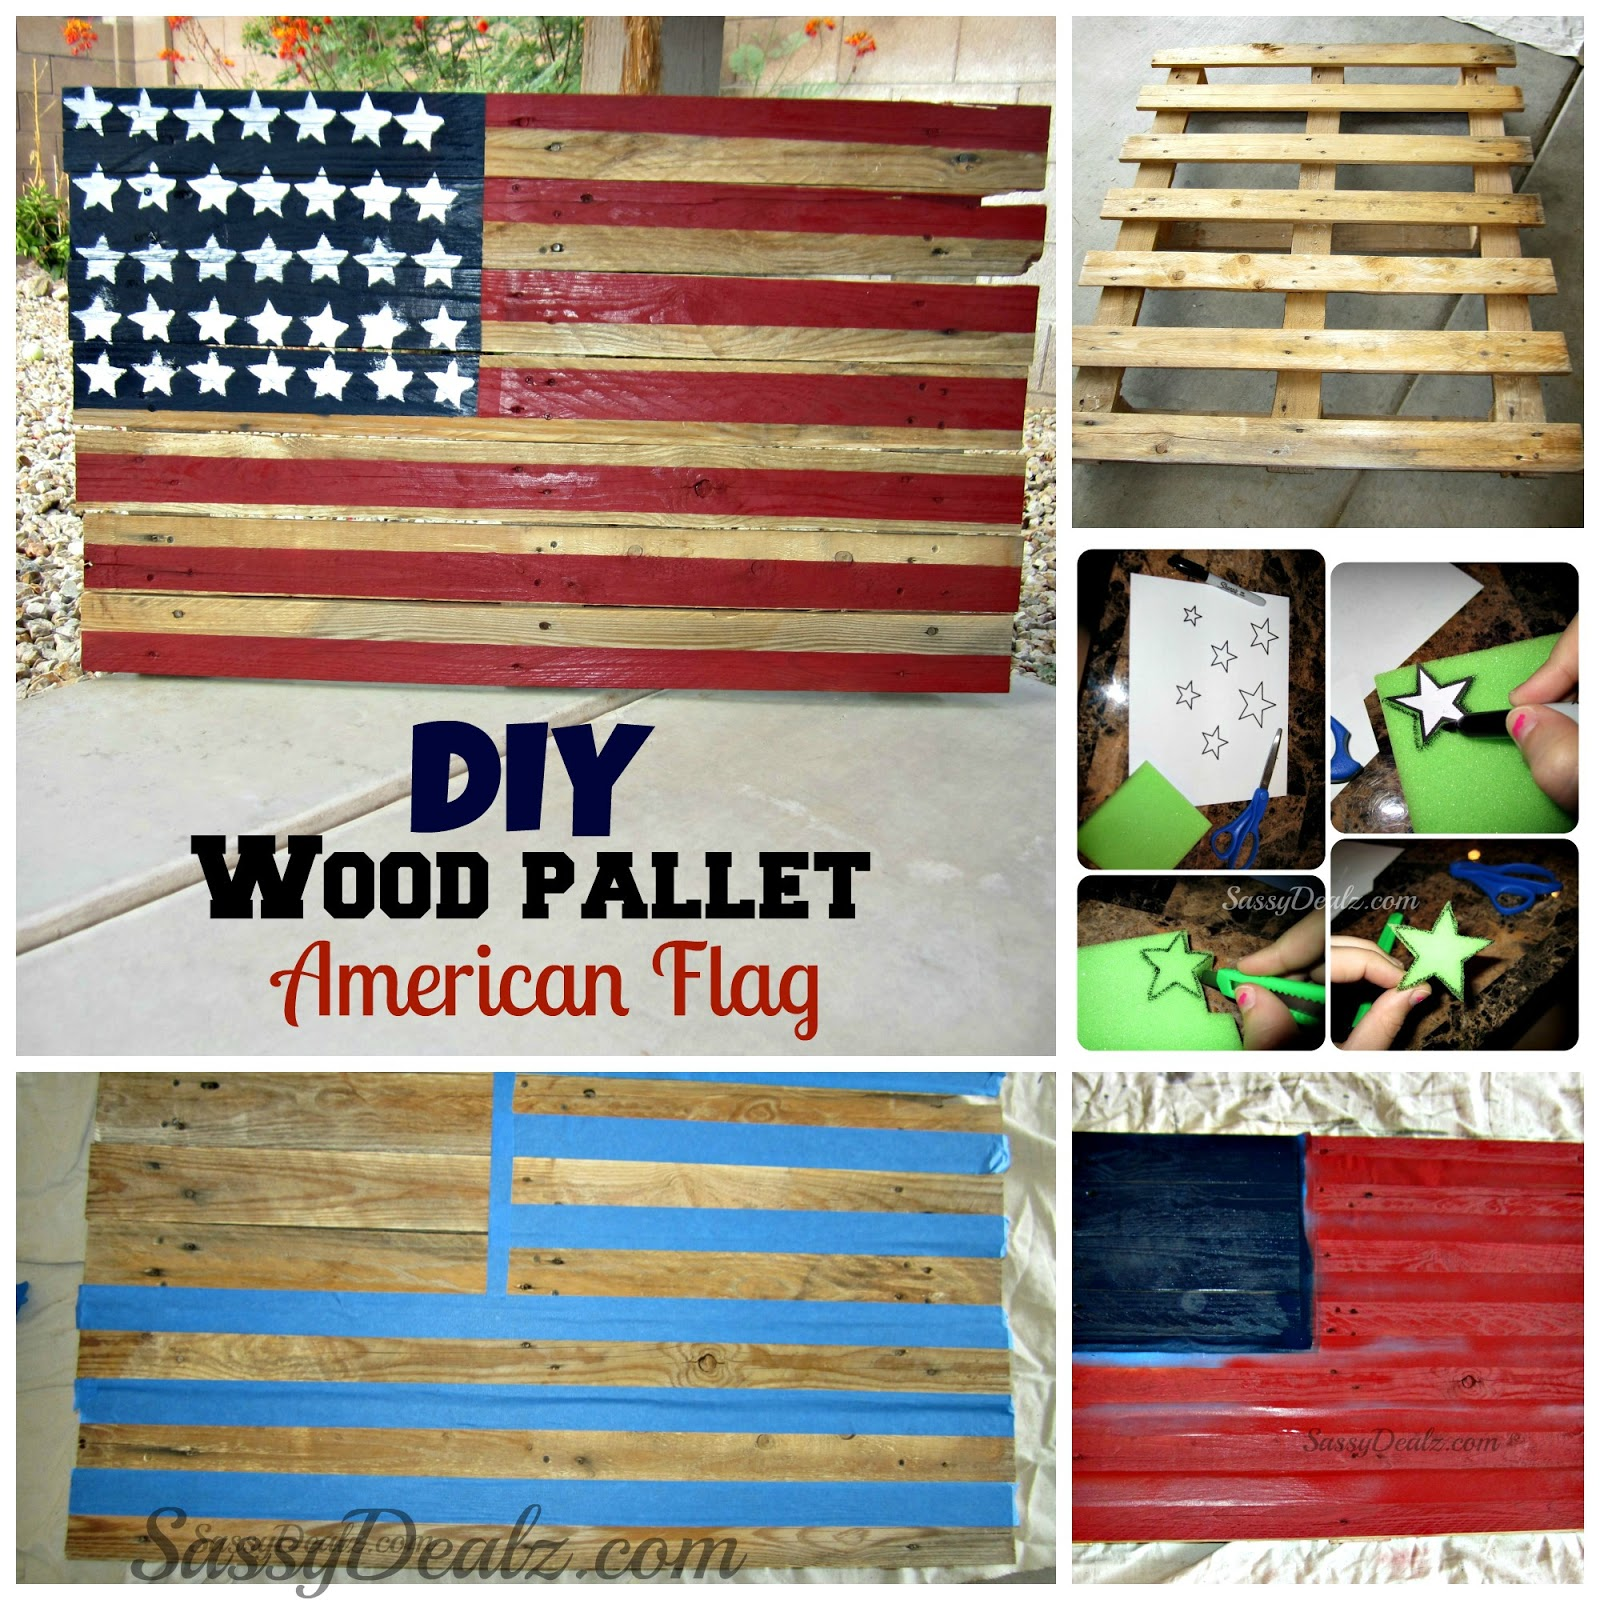 Diy How To Make An American Flag Out Of A Wood Pallet Step